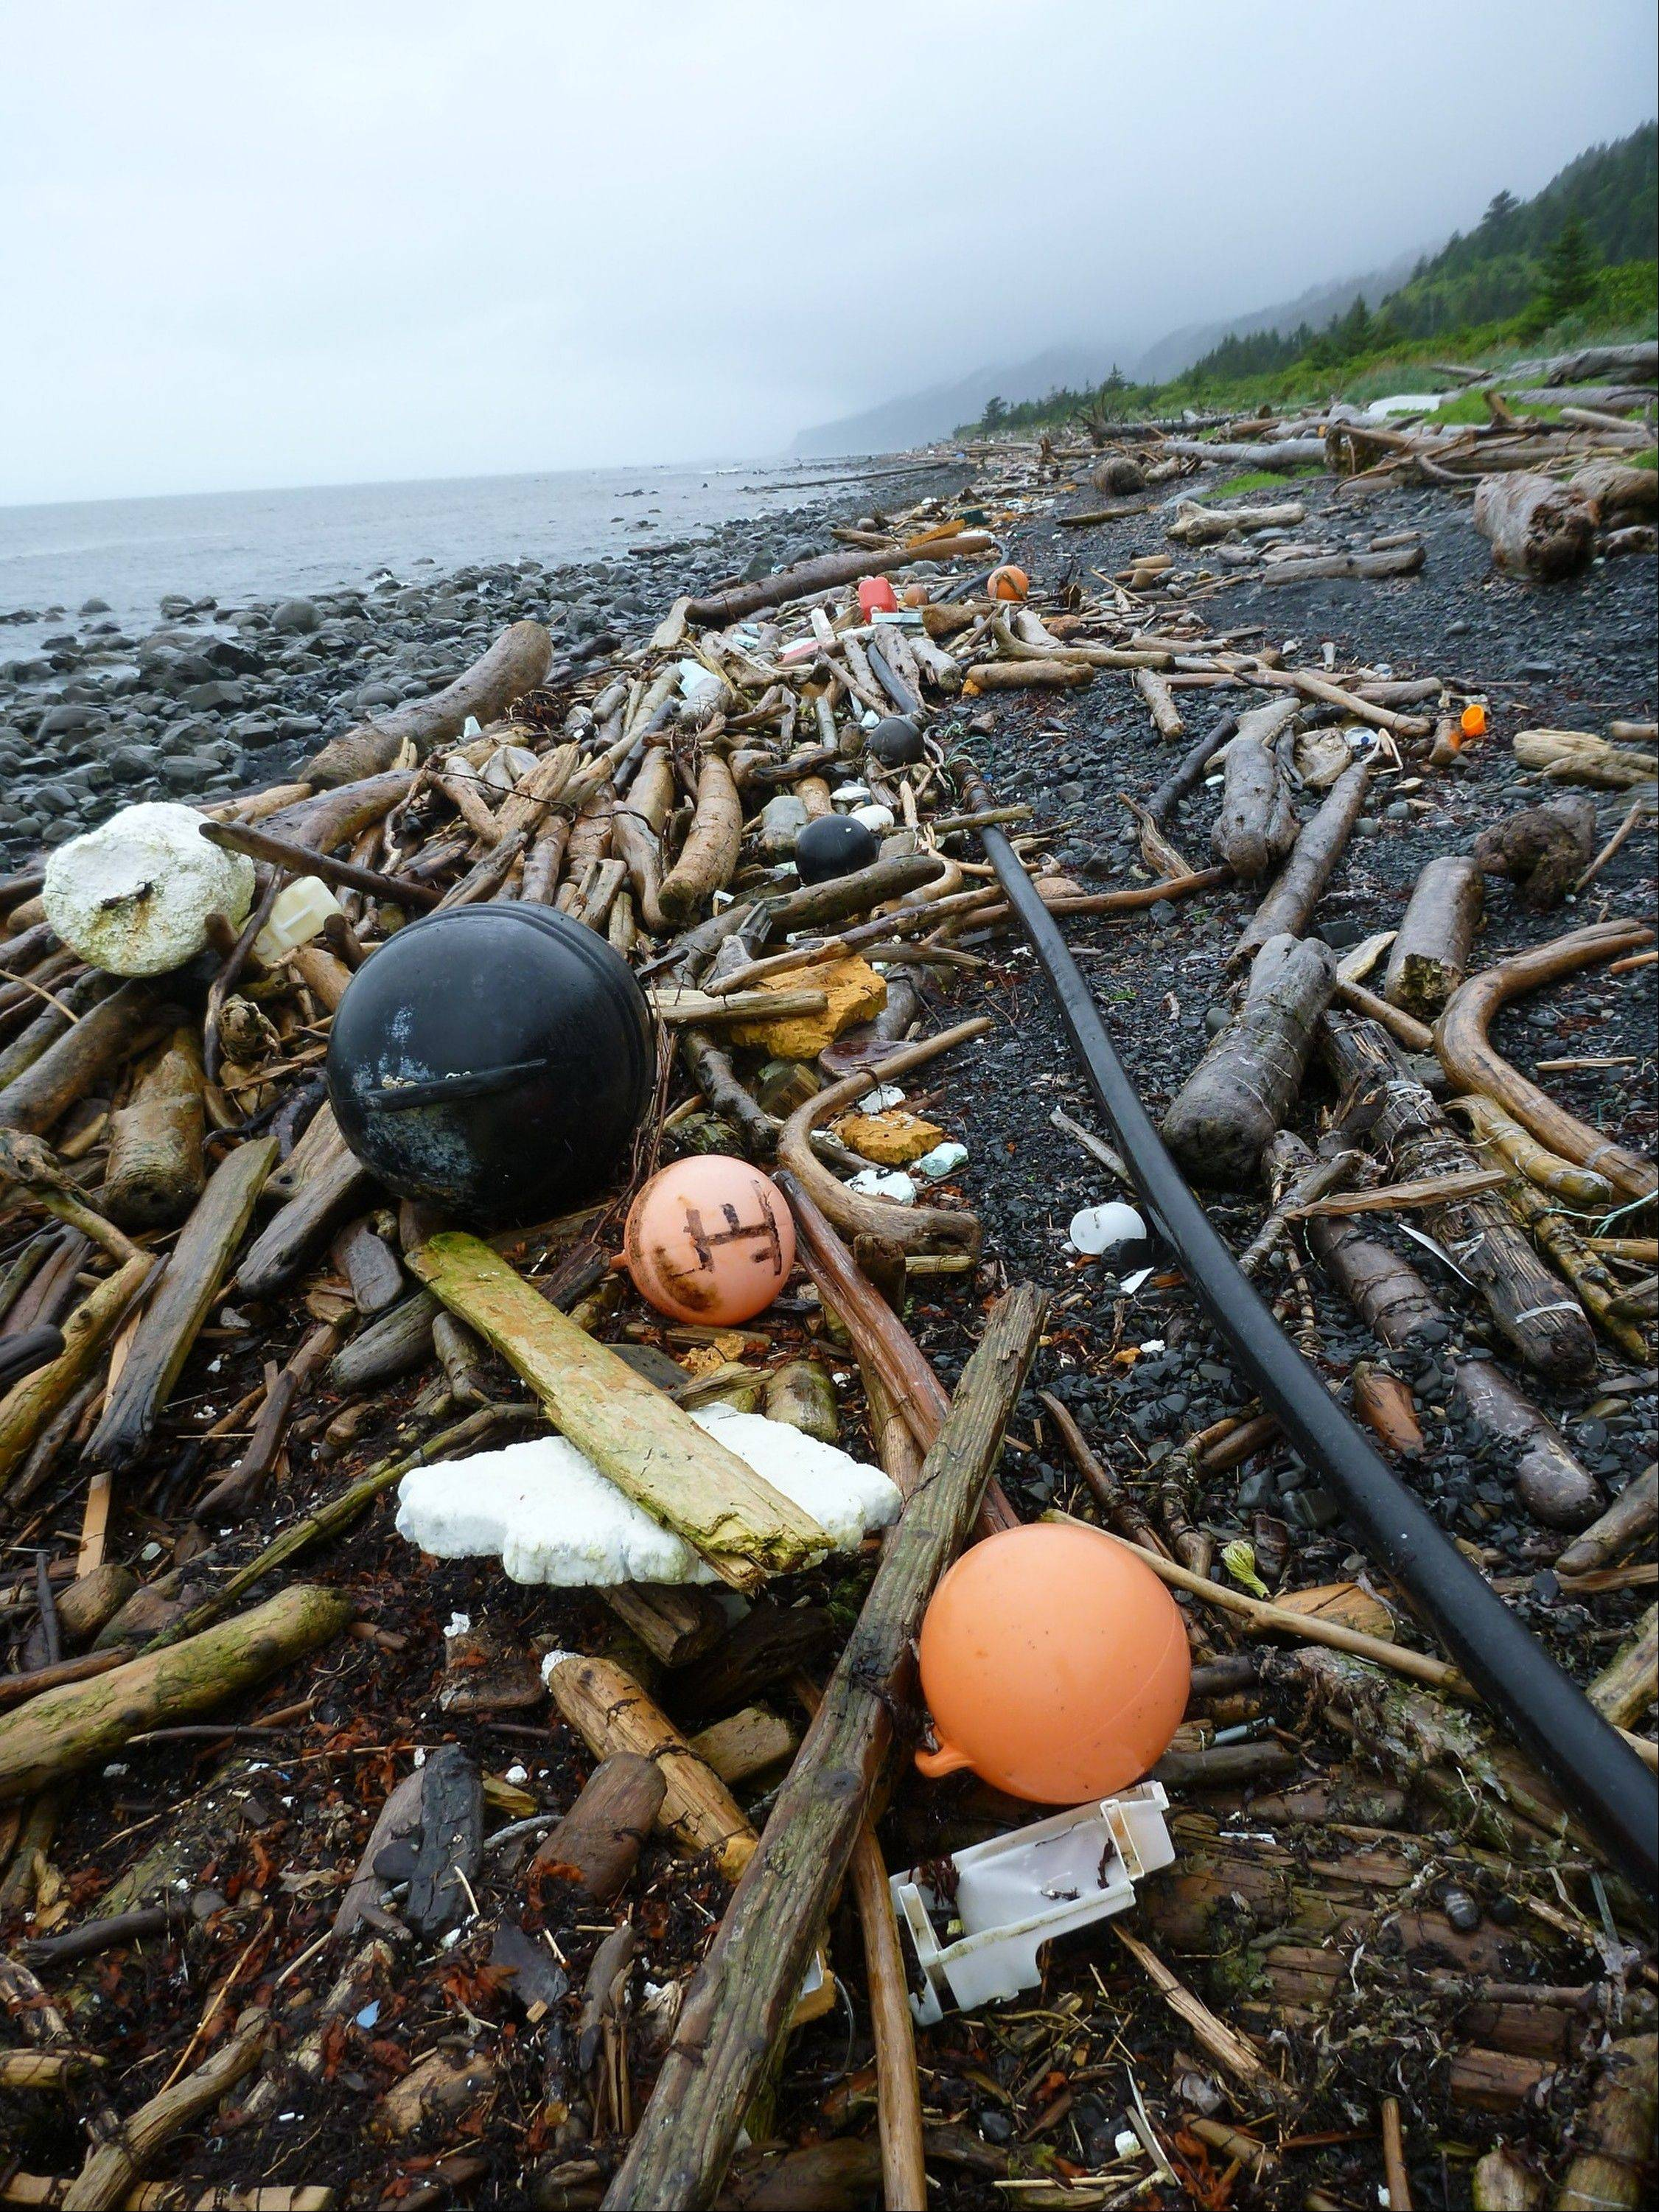 Some debris from Japan�s 2011 tsunami has washed ashore on the U.S. Pacific coast, seen here. But reports that an island of debris remains on the ocean may be incorrect, according to the National Oceanic and Atmospheric Administration.